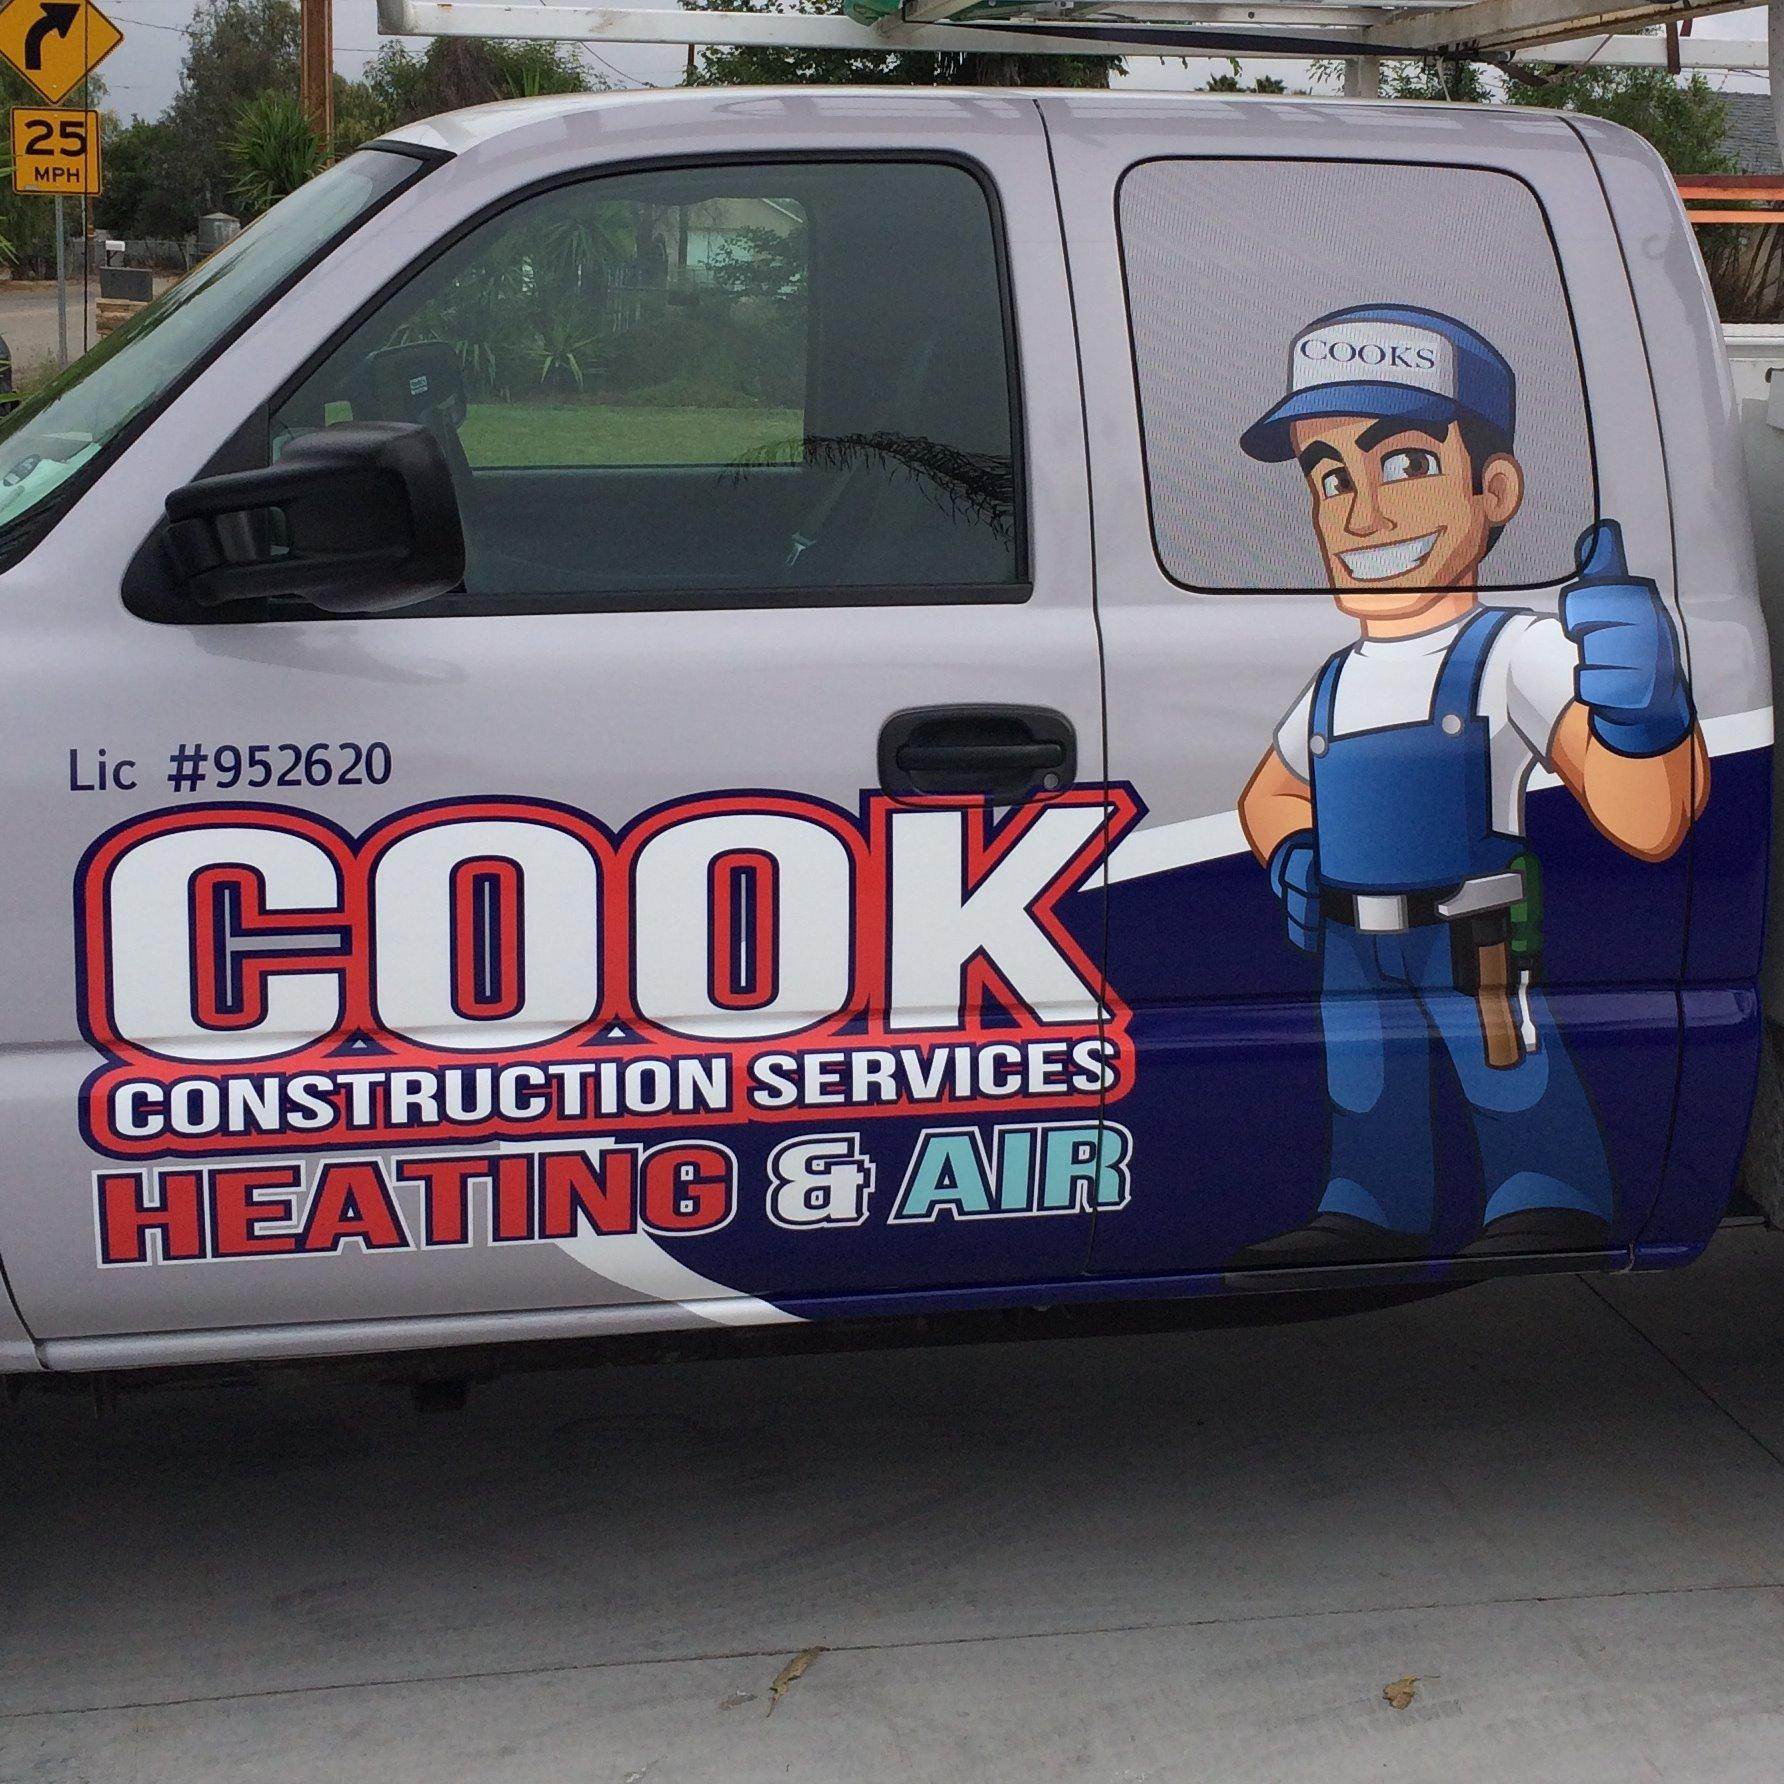 Cook Construction Services Heating and Air Conditioning